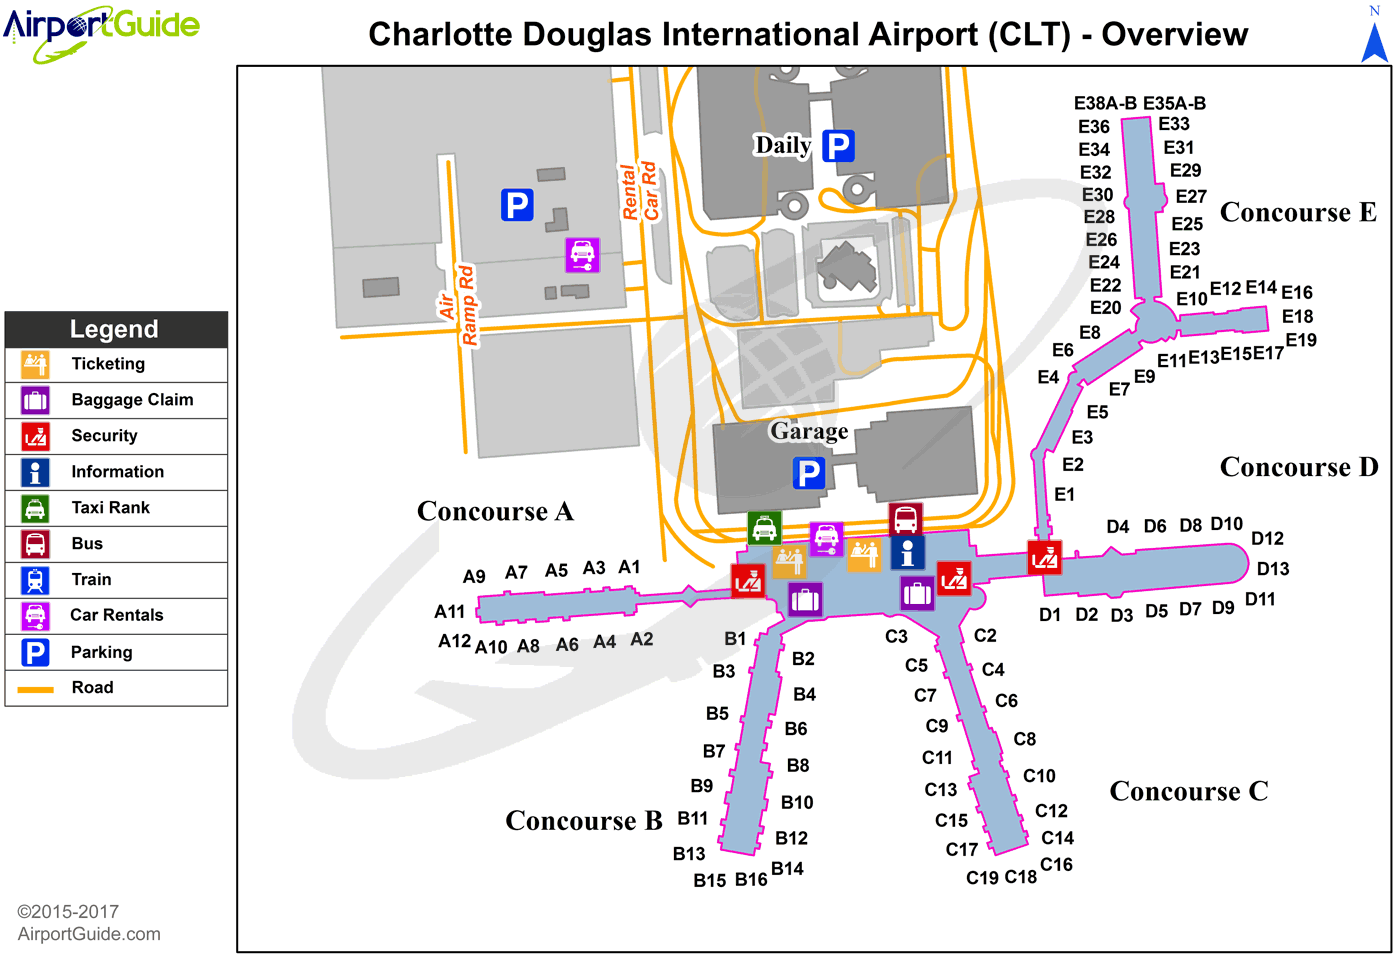 charlotte north carolina airport map Pin On Airport Terminal Maps Airportguide Com charlotte north carolina airport map